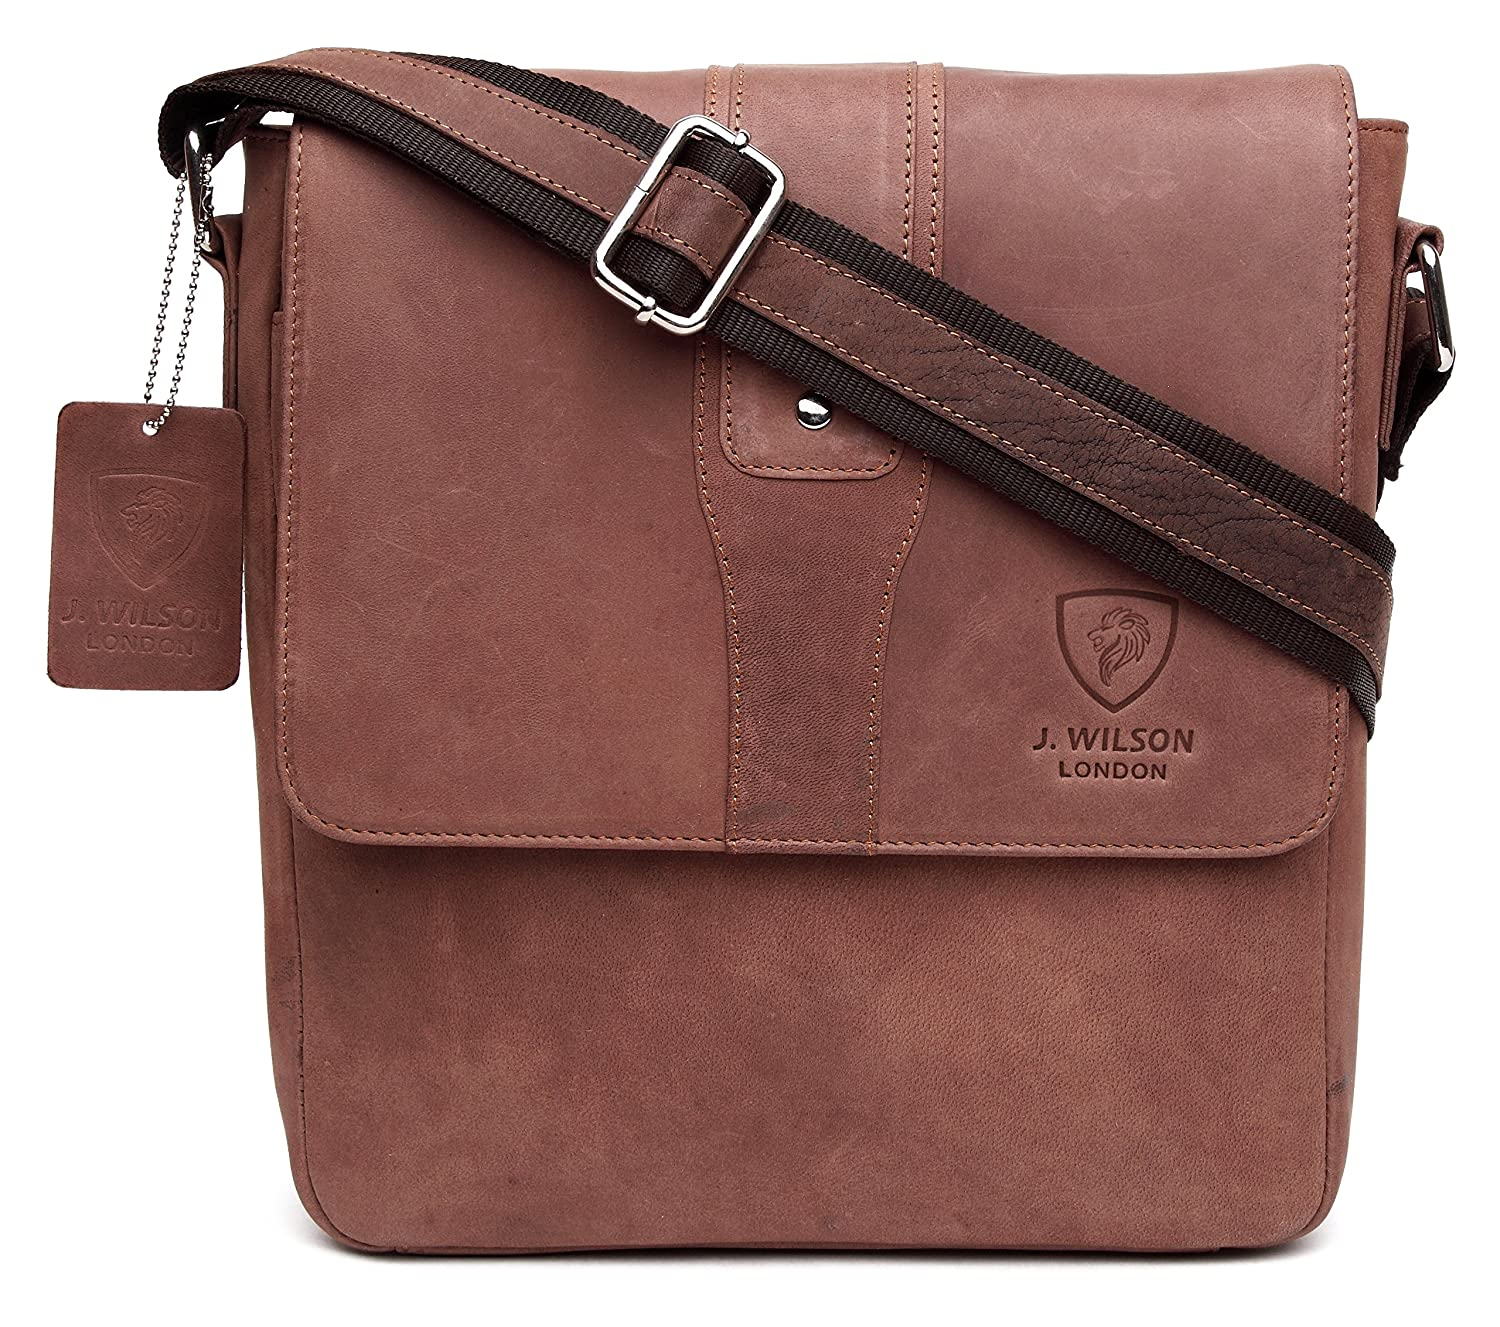 100% Pure Genuine Real Vintage Hunter Leather Handmade Mens Women Leather Flapover Everyday Crossover Shoulder Work iPad Messenger Bag (Distressed Brown)